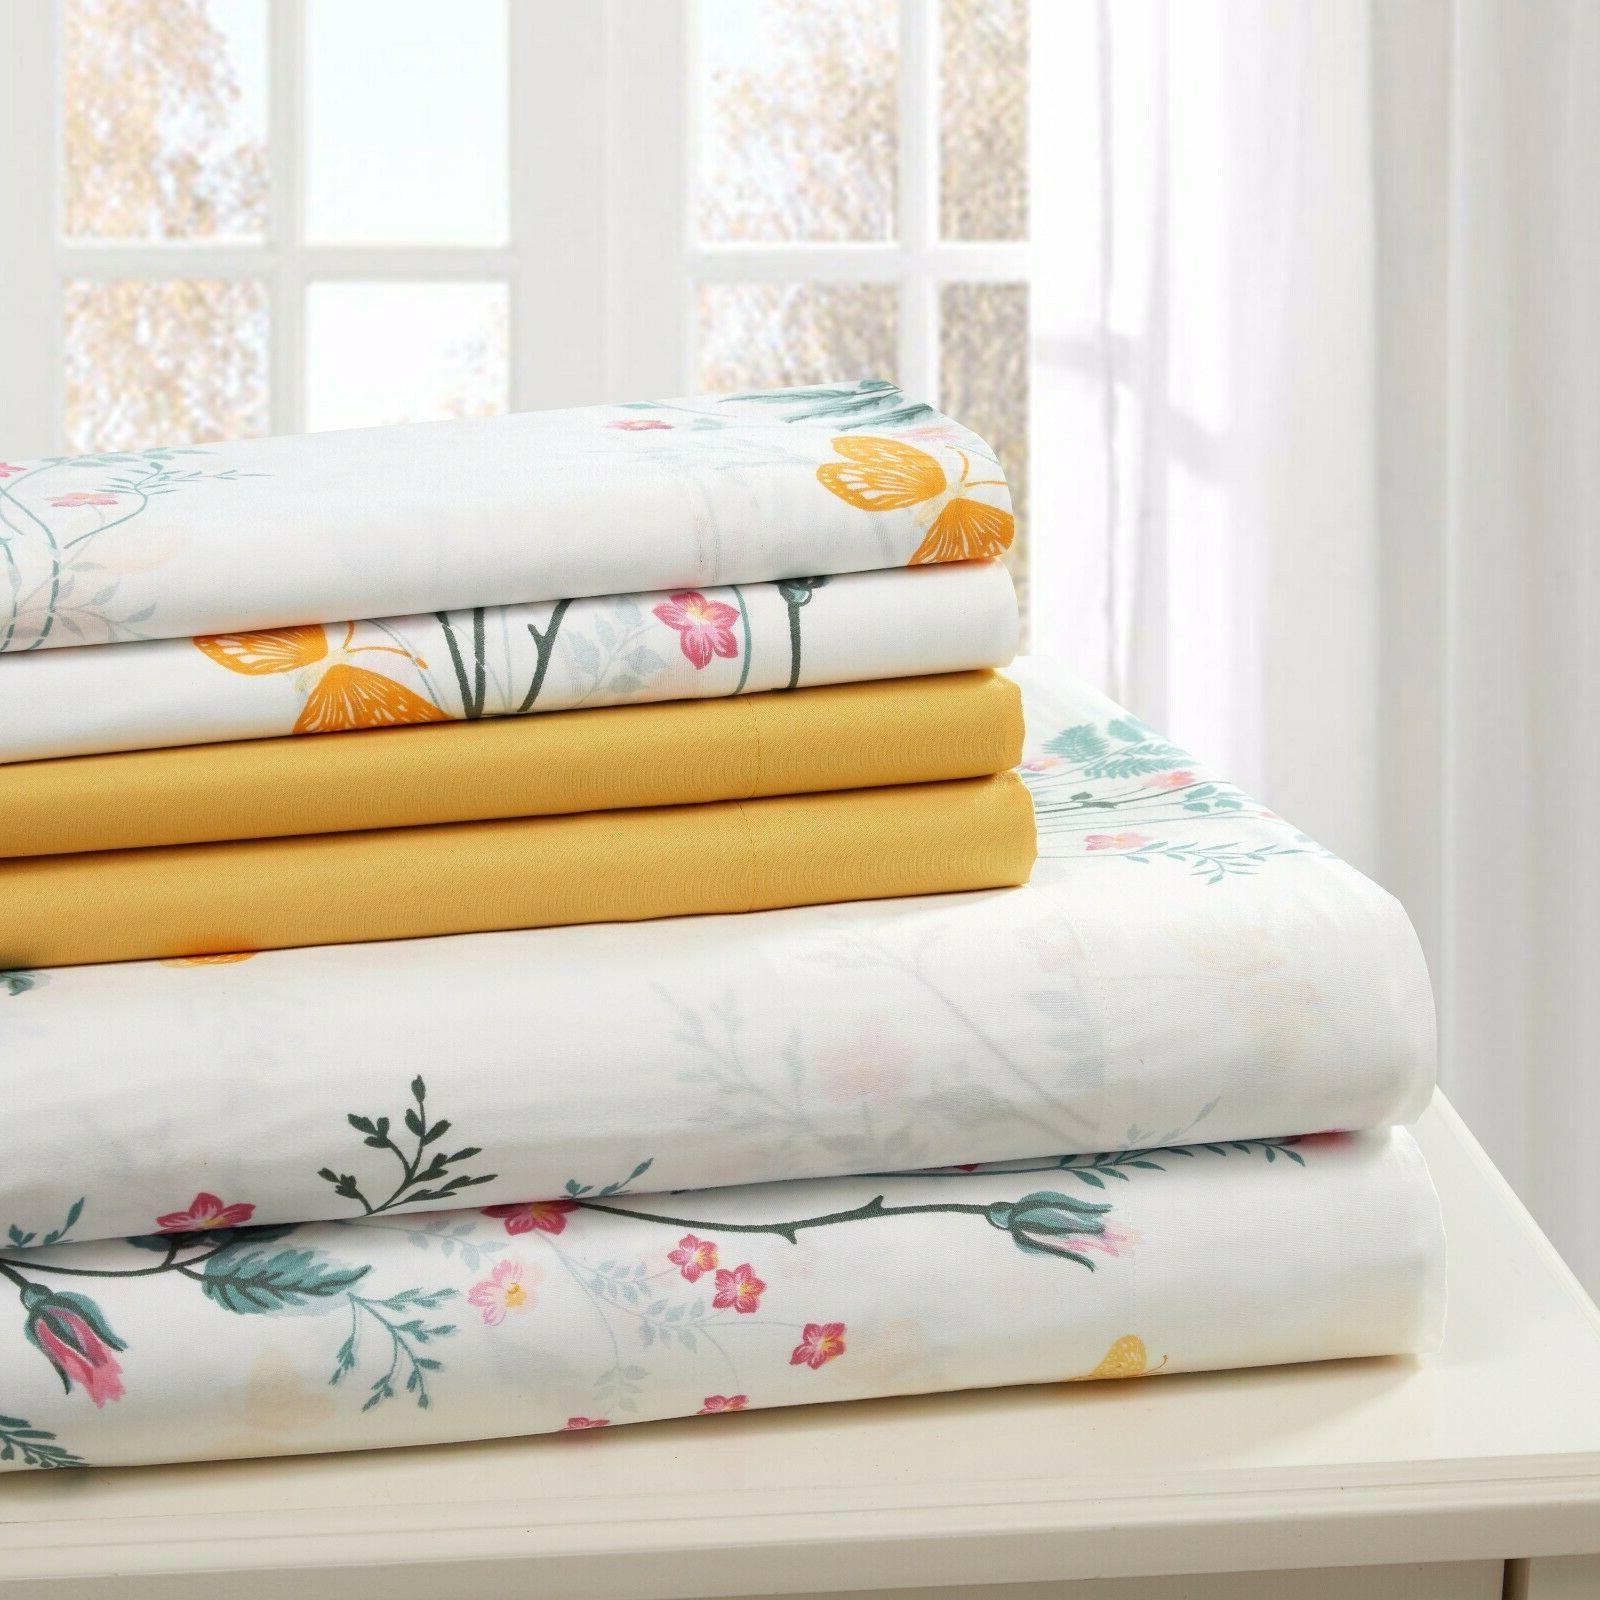 COTTON PERCALE SHEET SET PRINTED SOFT TWIN FULL FREE WASH